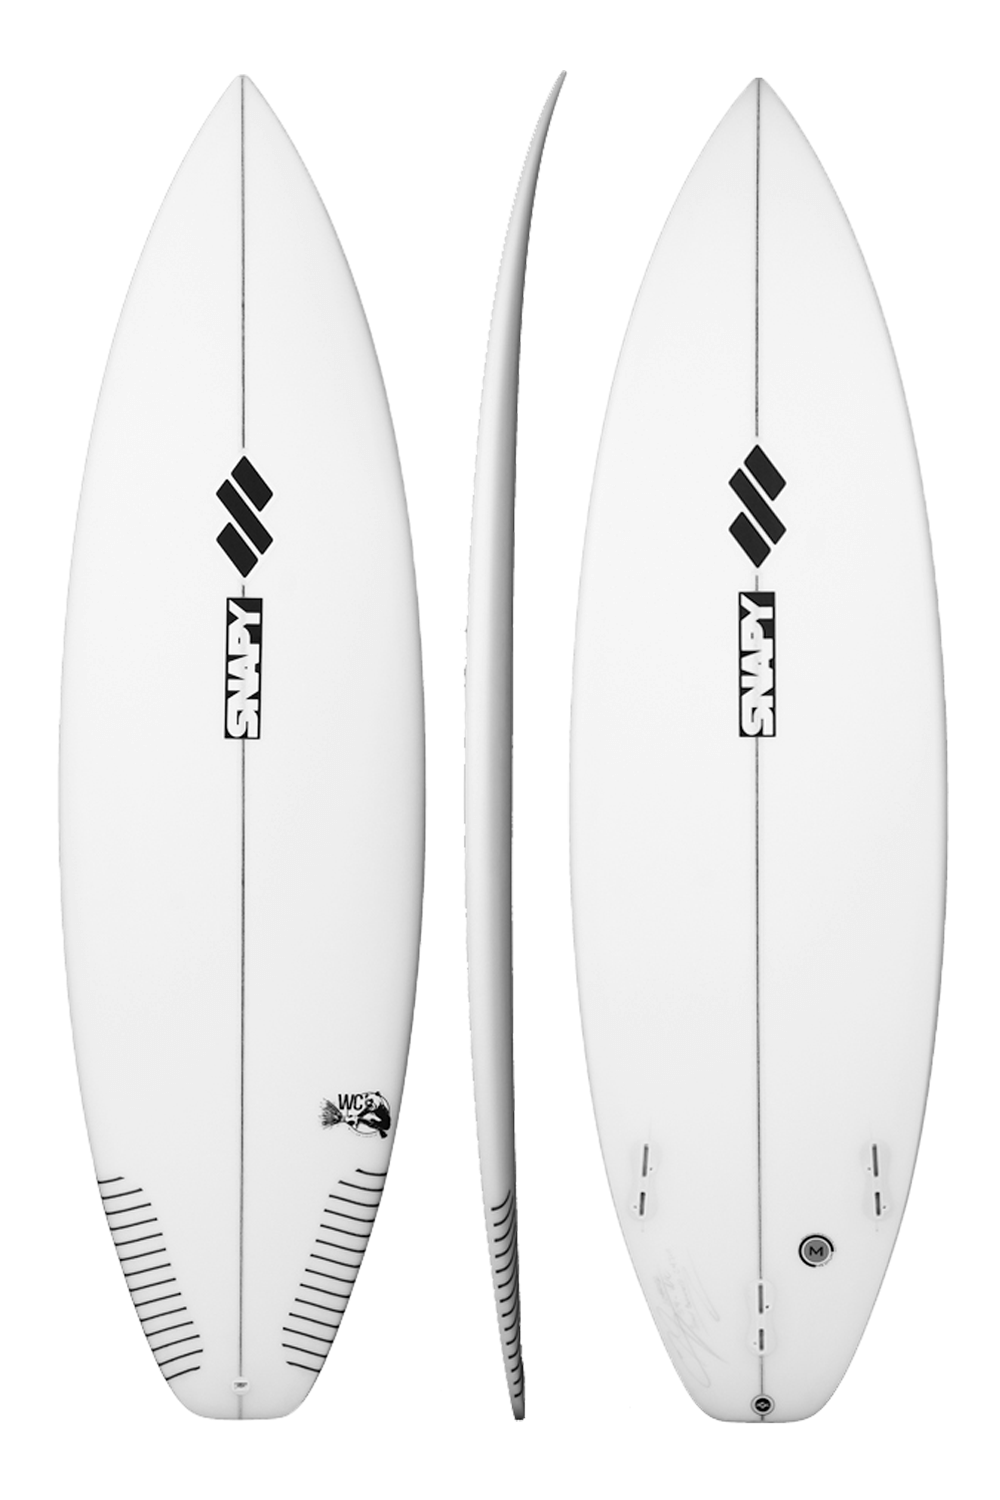 WC - Willian Cardoso Model | SNAPY SURFBOARDS